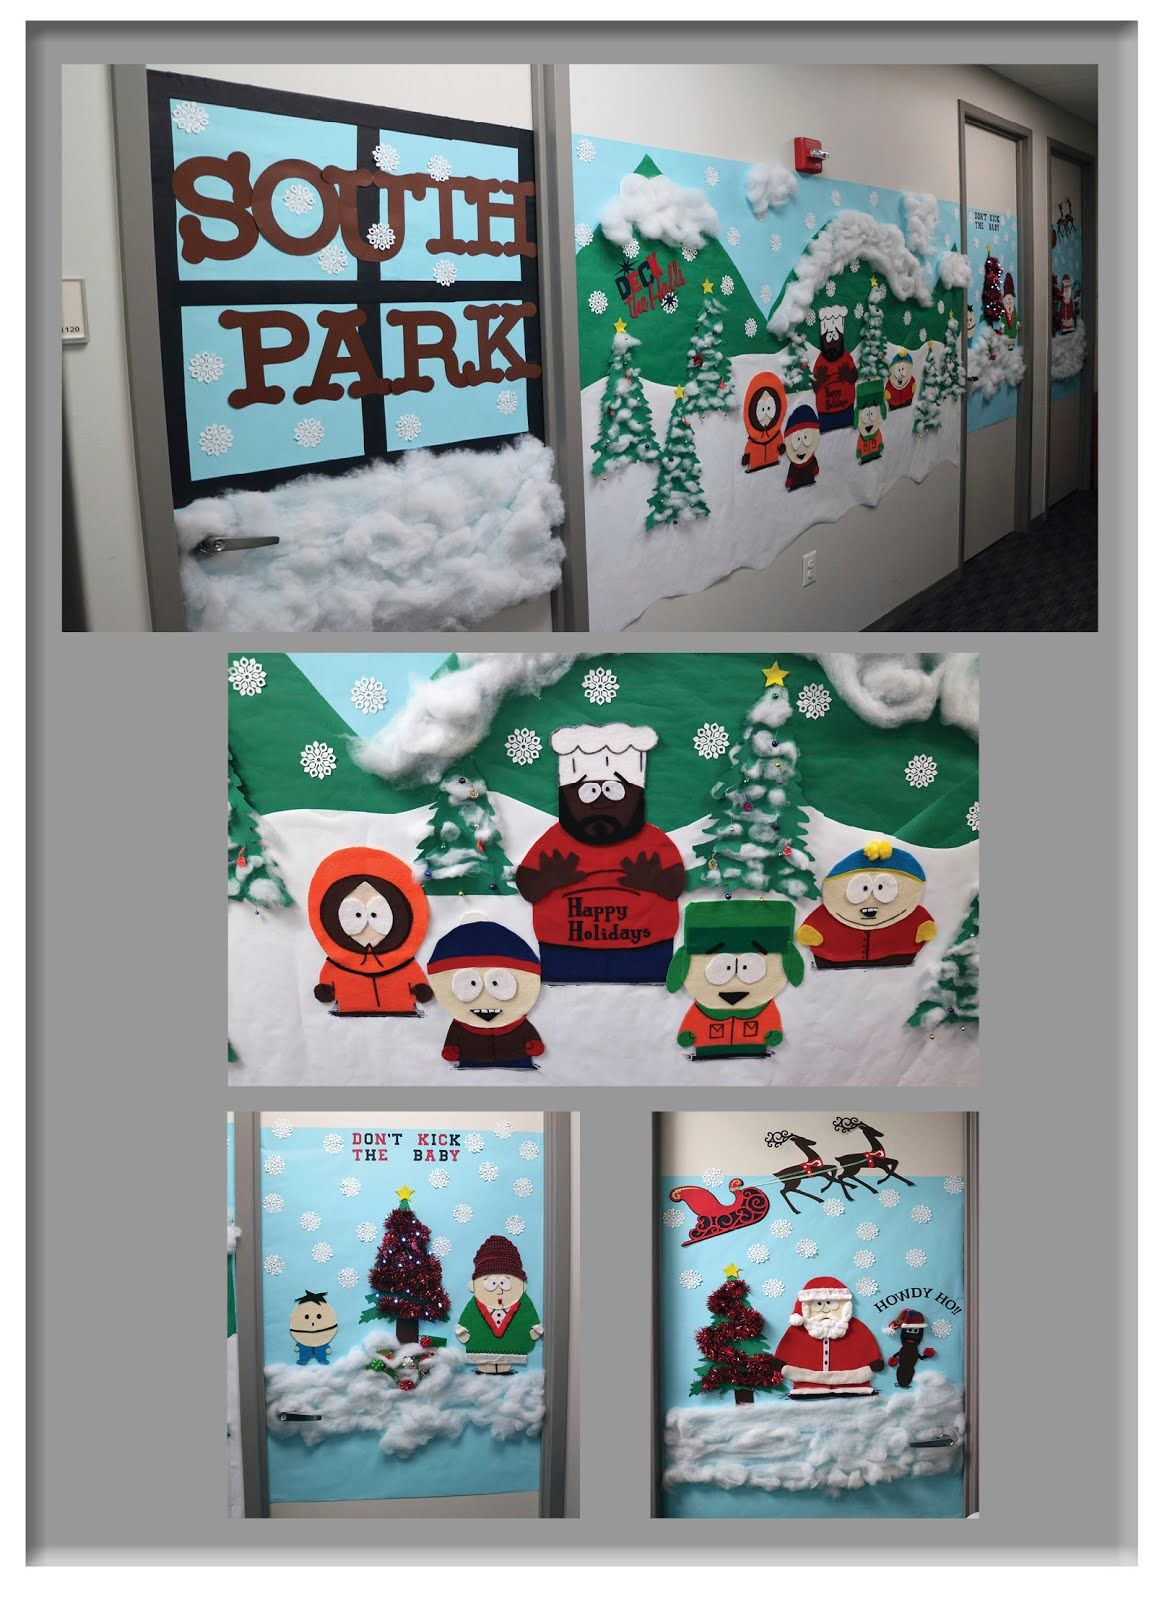 South Park Christmas.Christmas In South Park Door Decorating Contest Southpark